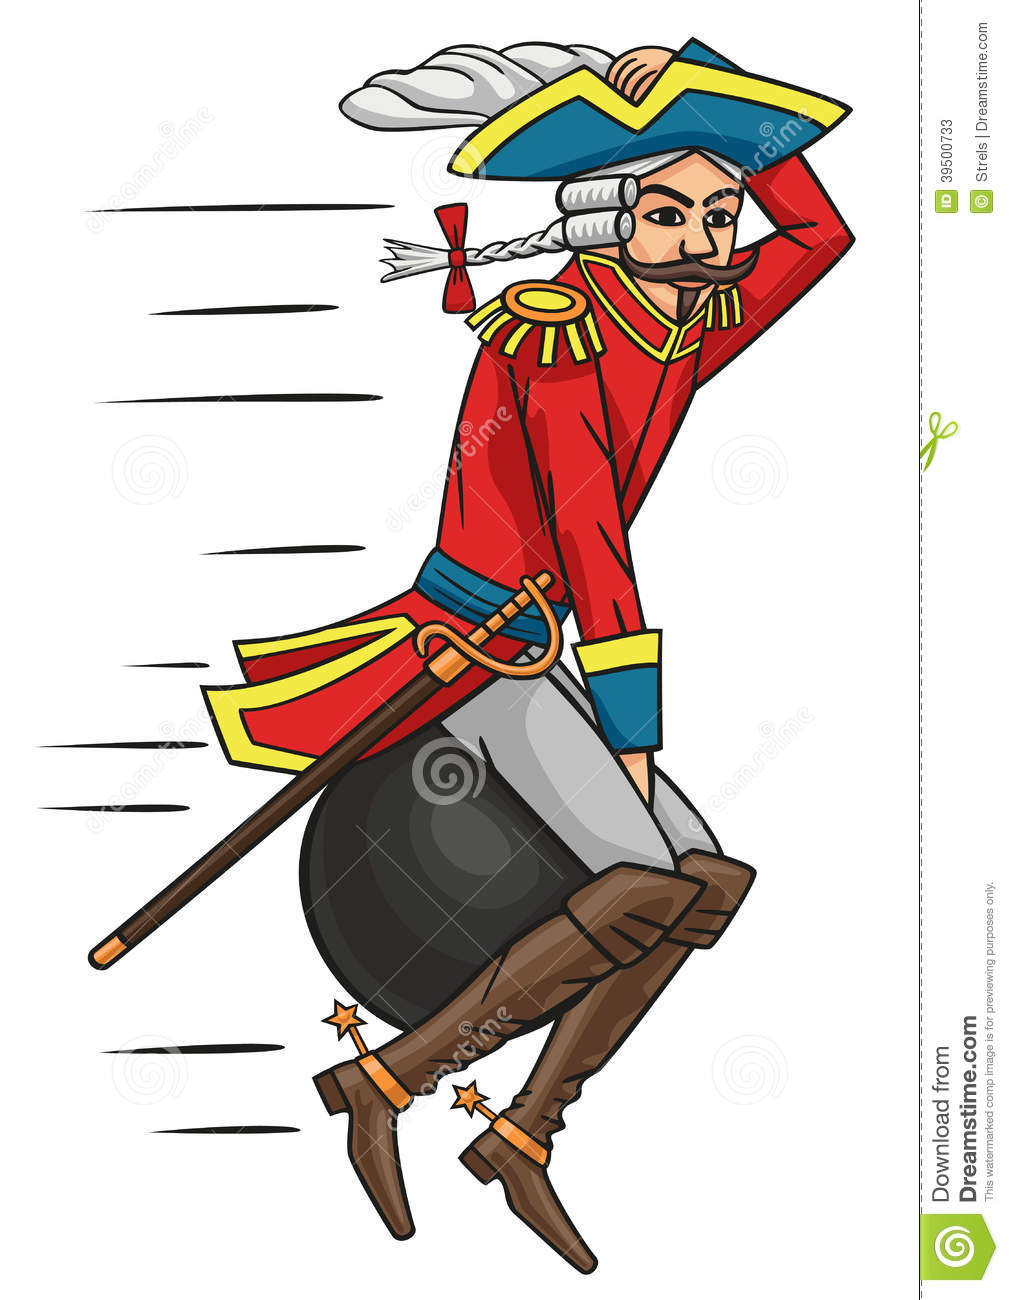 Baron Munchausen. Stock Vector.